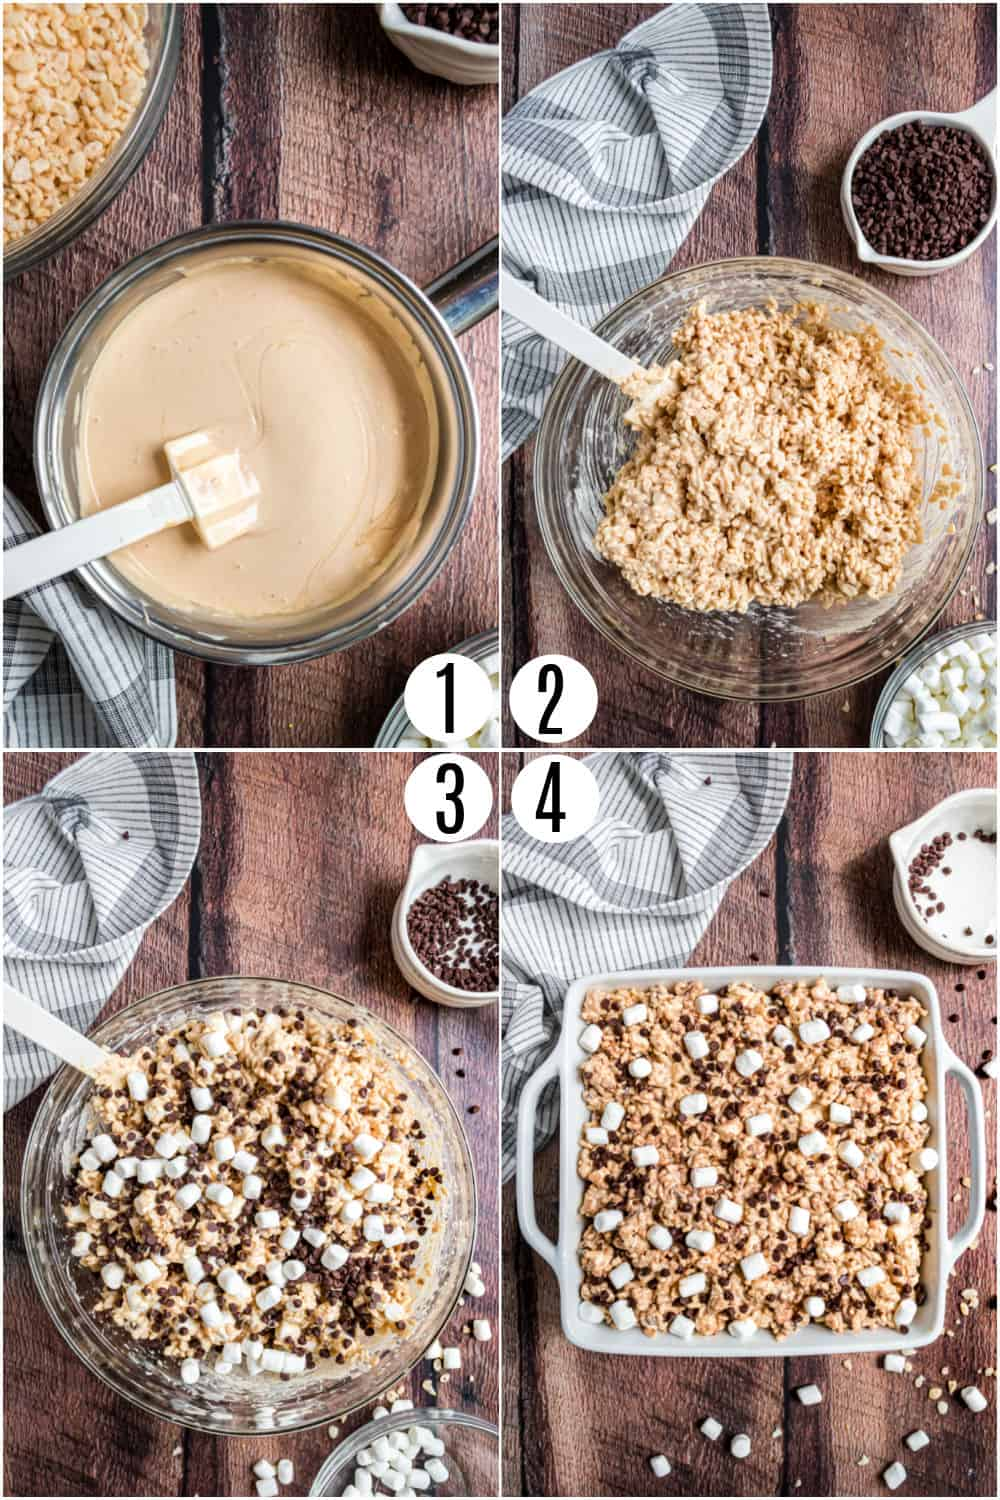 Step by step photos showing how to make avalanche bars.